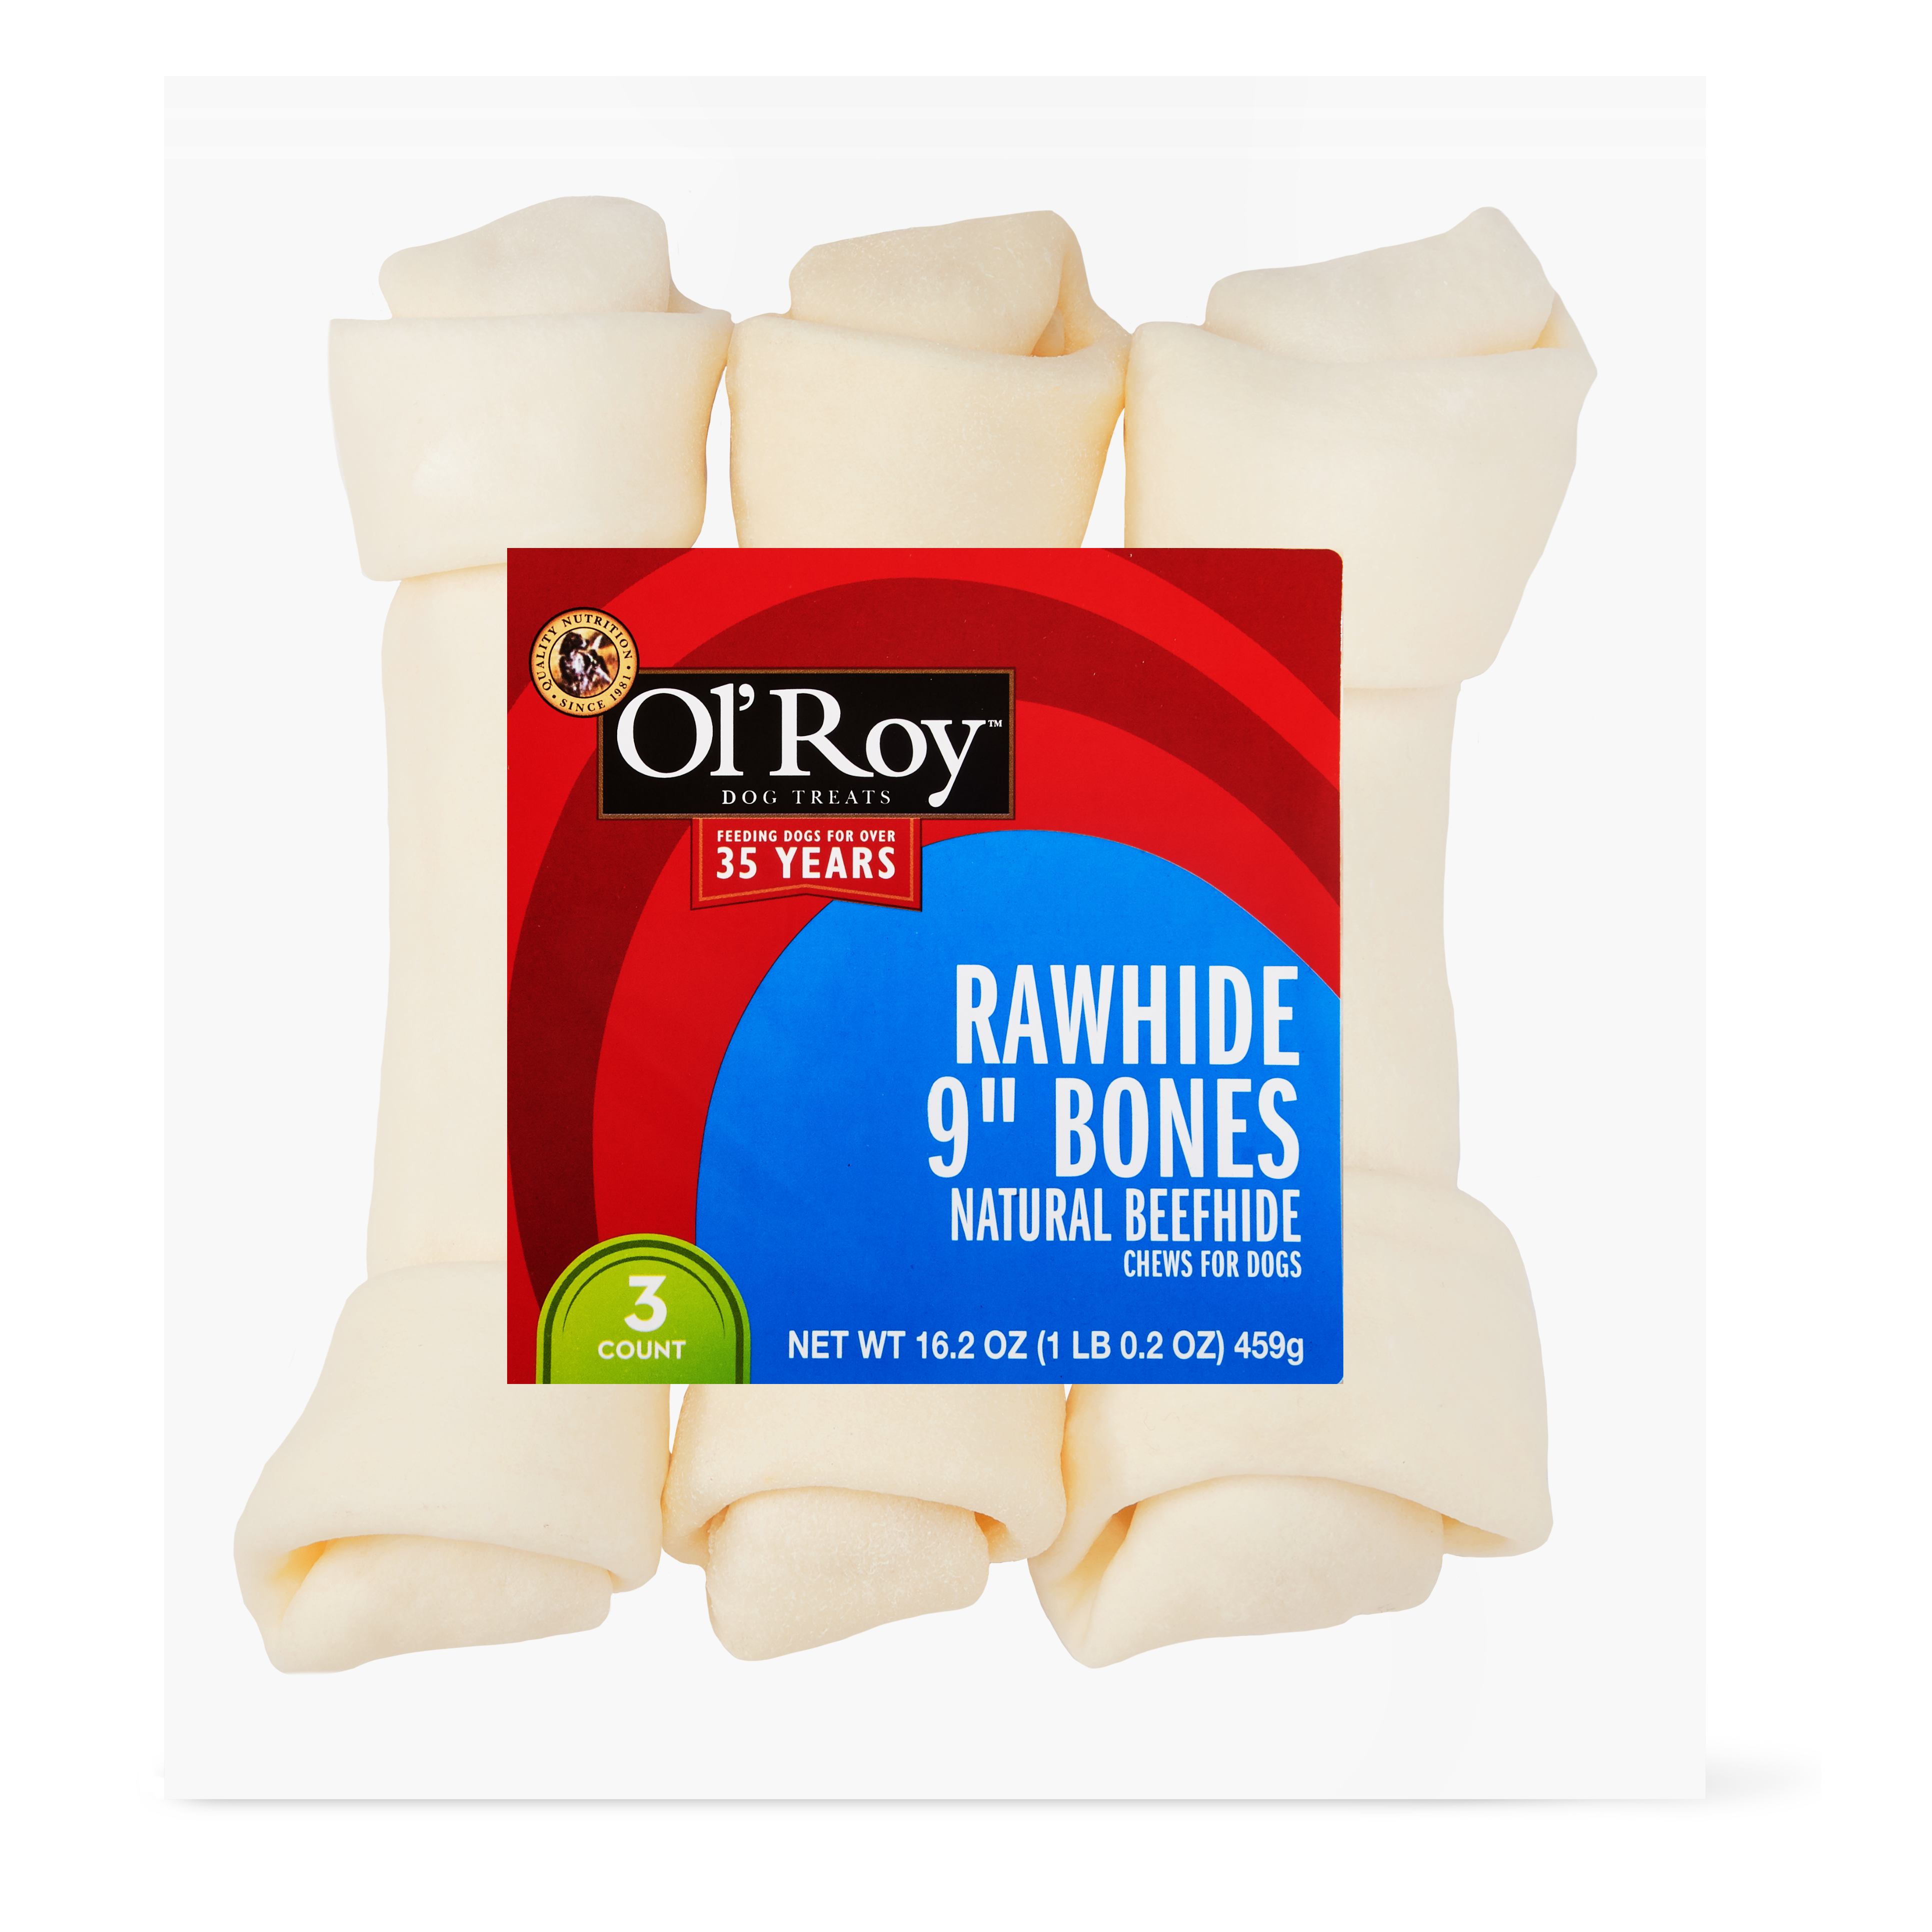 "Ol' Roy 9"" Rawhide Bones, Natural Beefhide, 3 Count"